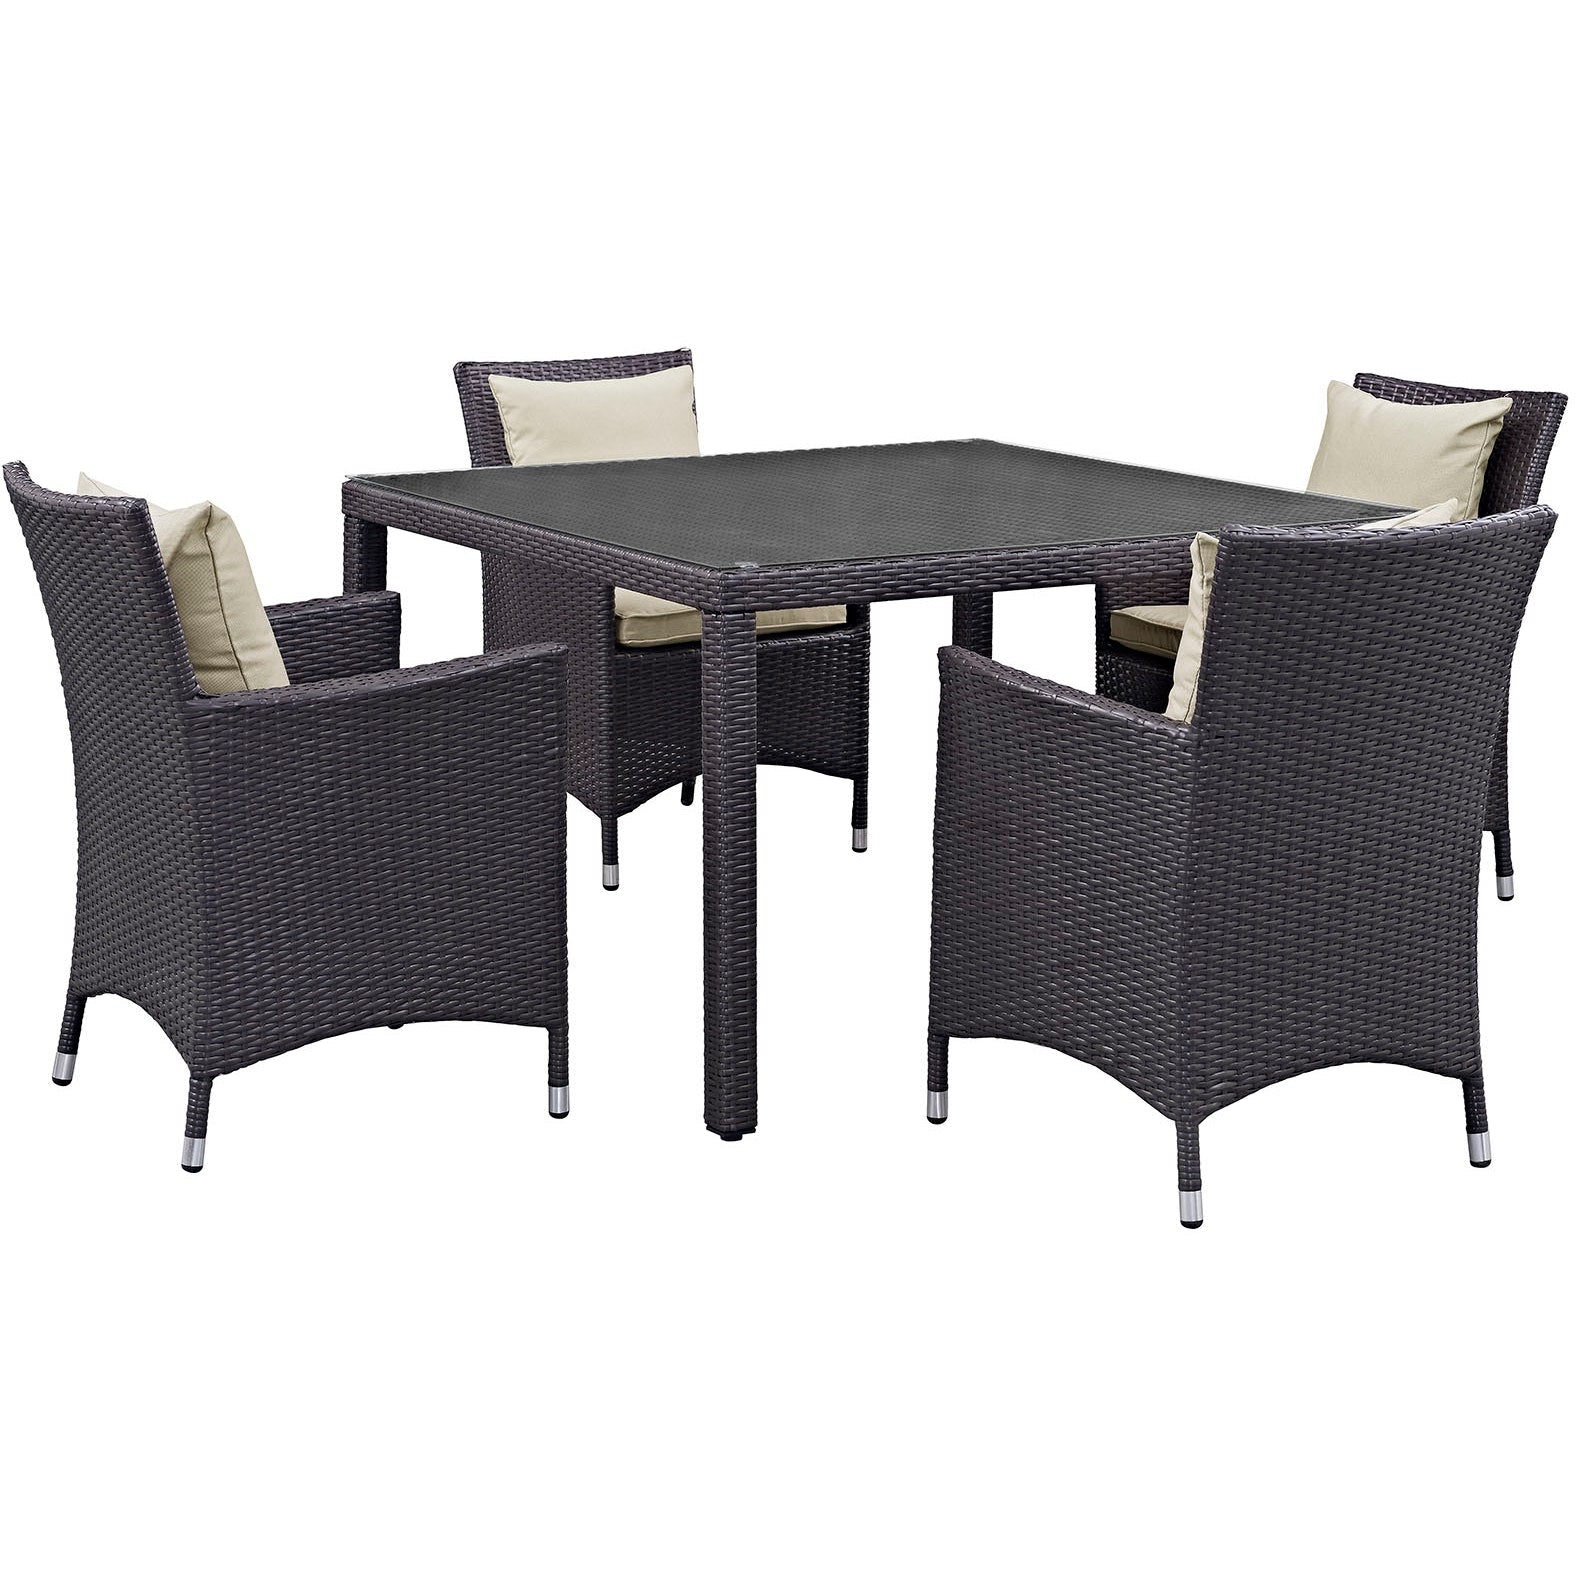 Convene 5 Piece Outdoor Patio Dining Set - Espresso Beige